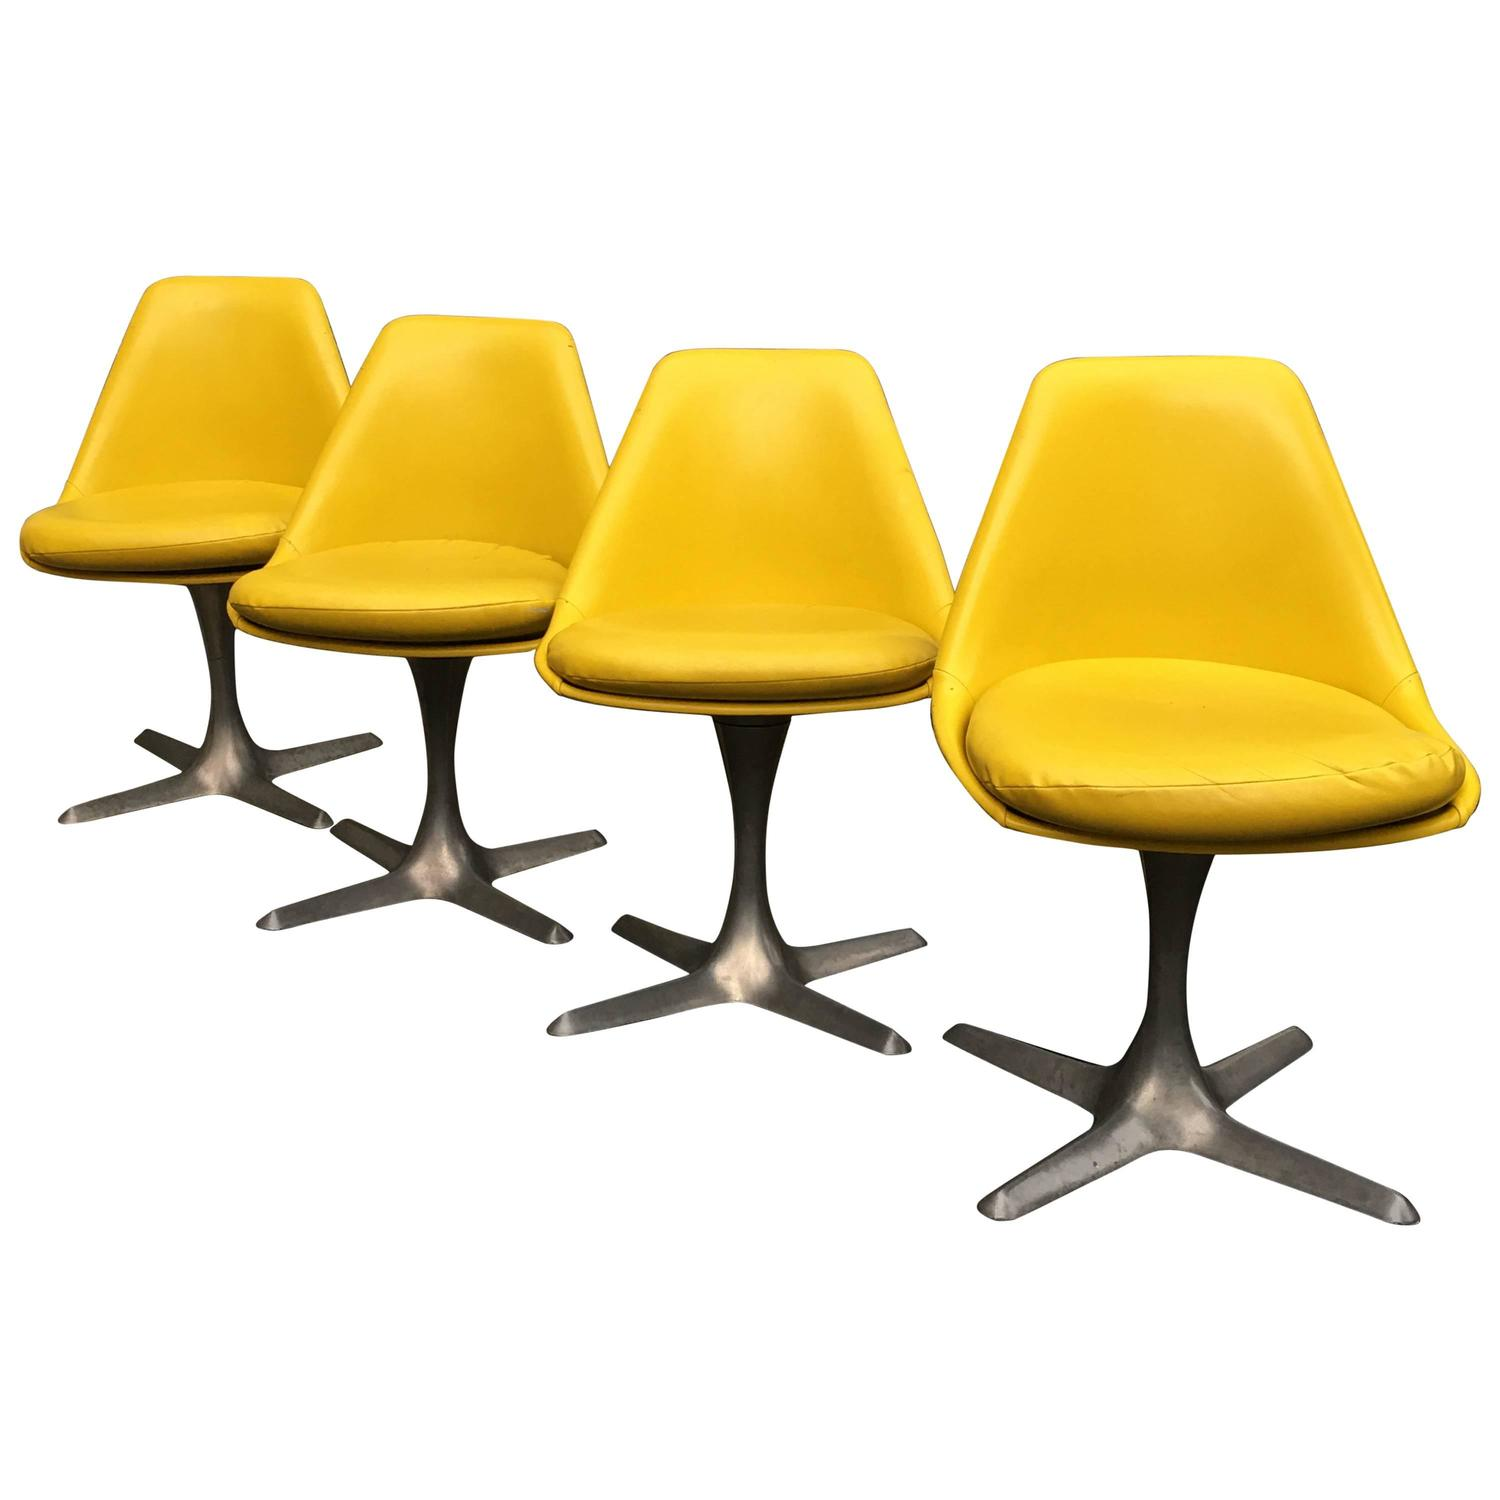 Yellow Dining Chair Four Knoll Yellow Dining Chairs For Sale At 1stdibs